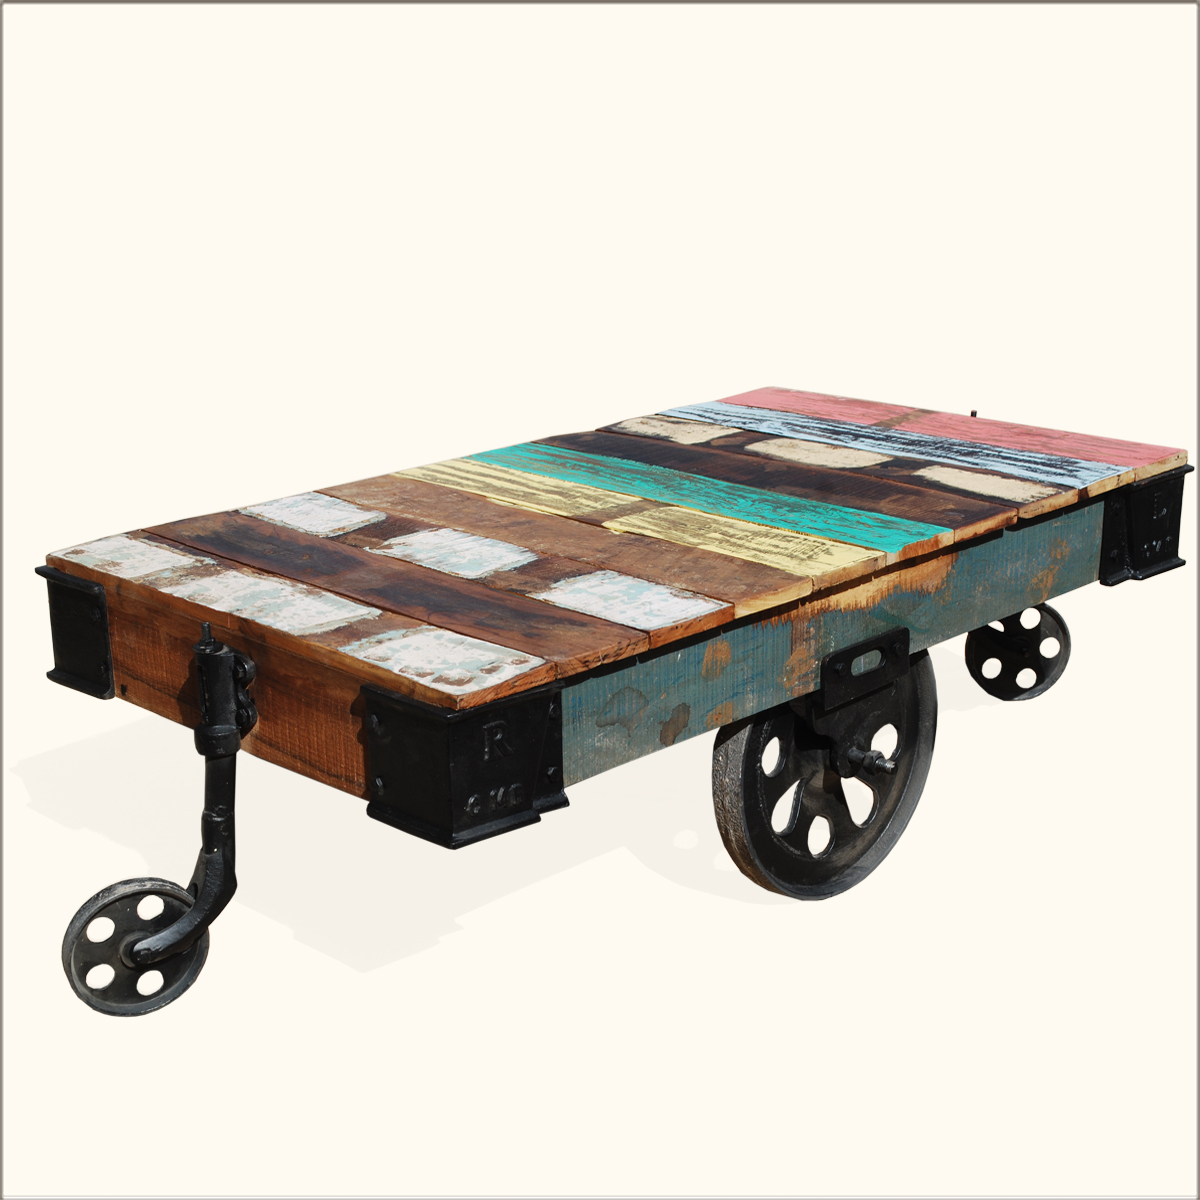 Rustic Coffee Table With Wheels The Best Inspiration For Interiors Design And Furniture